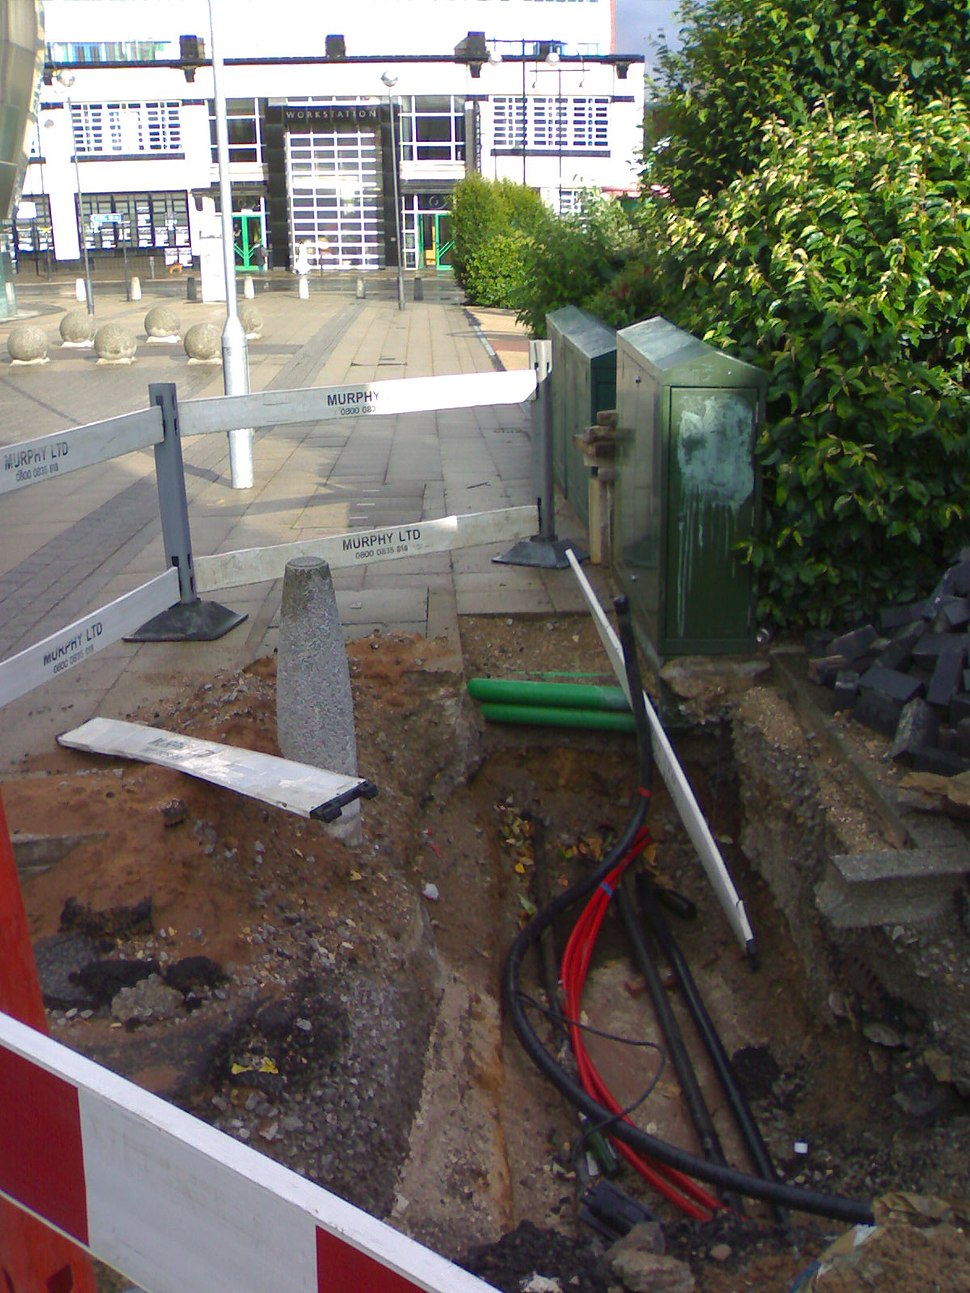 Virgin Media cables revealed under pavement